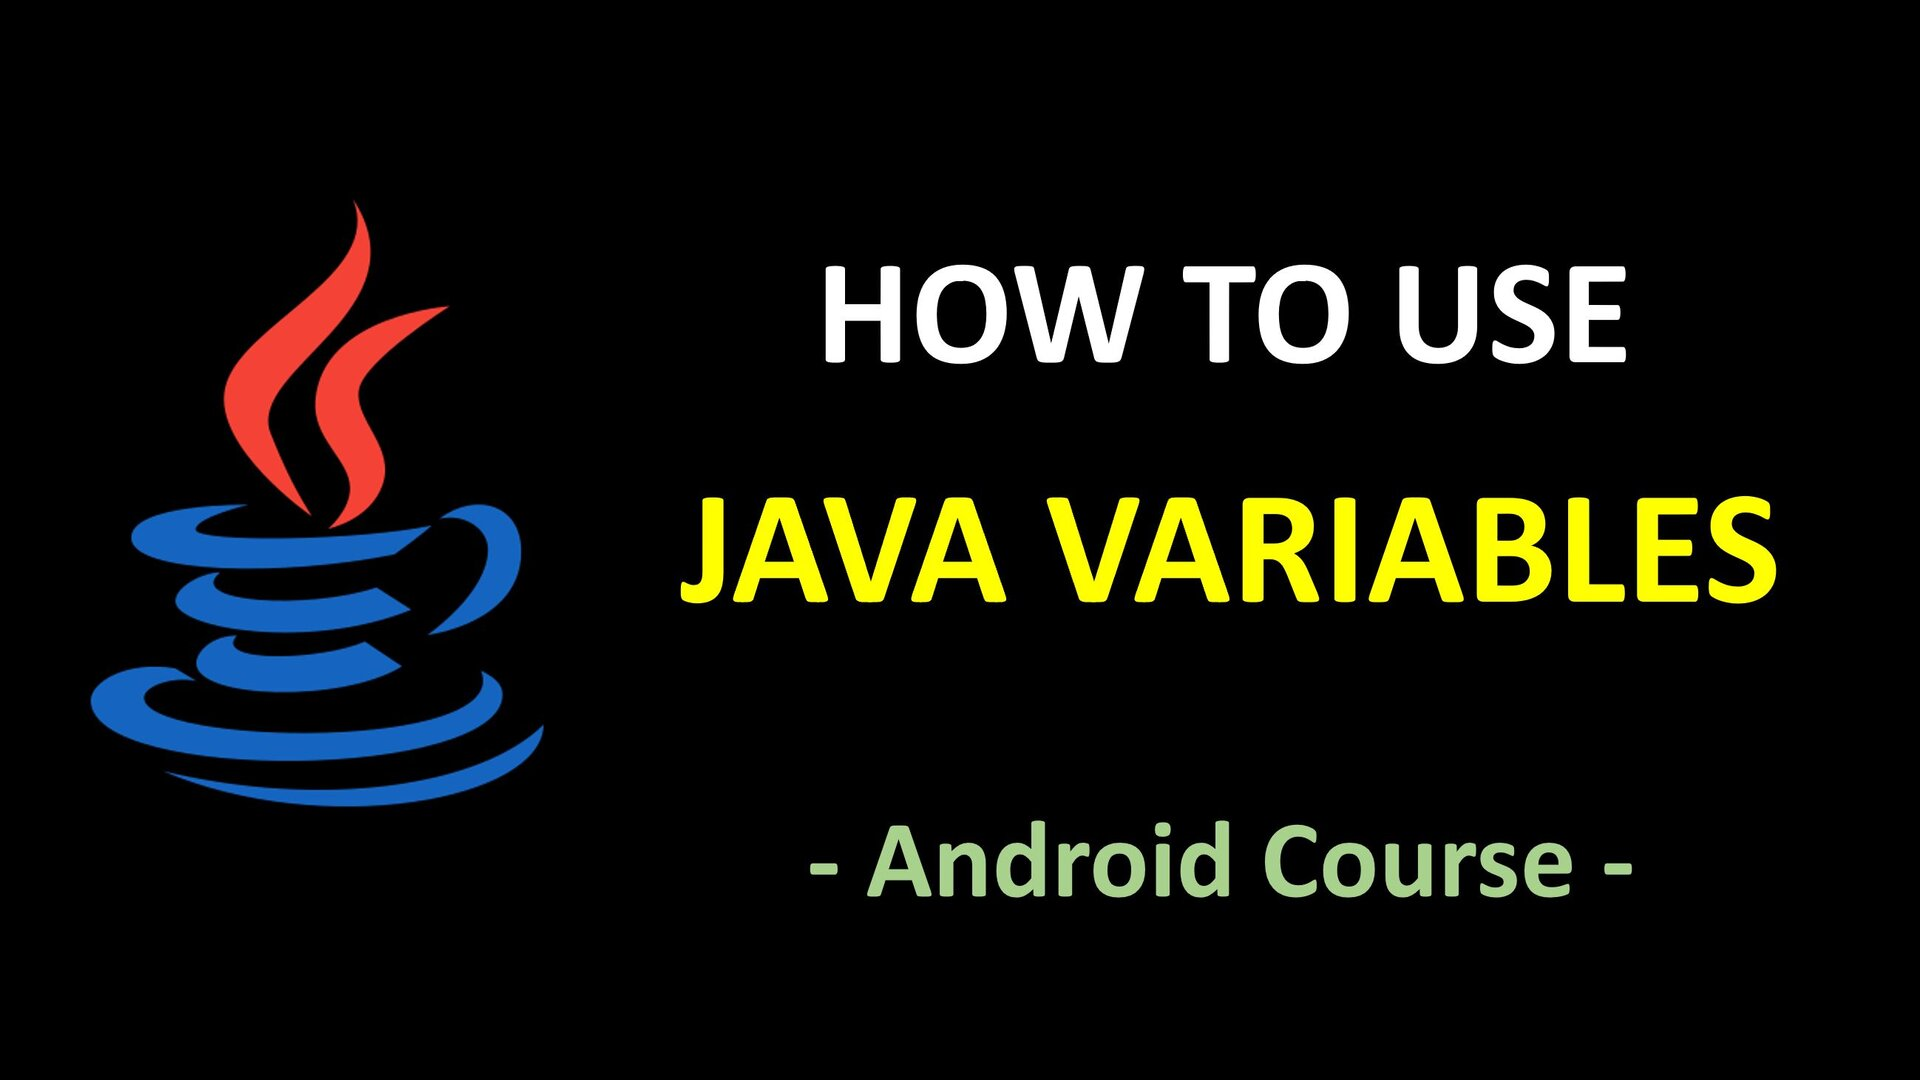 Android Course - How to use Java Variables